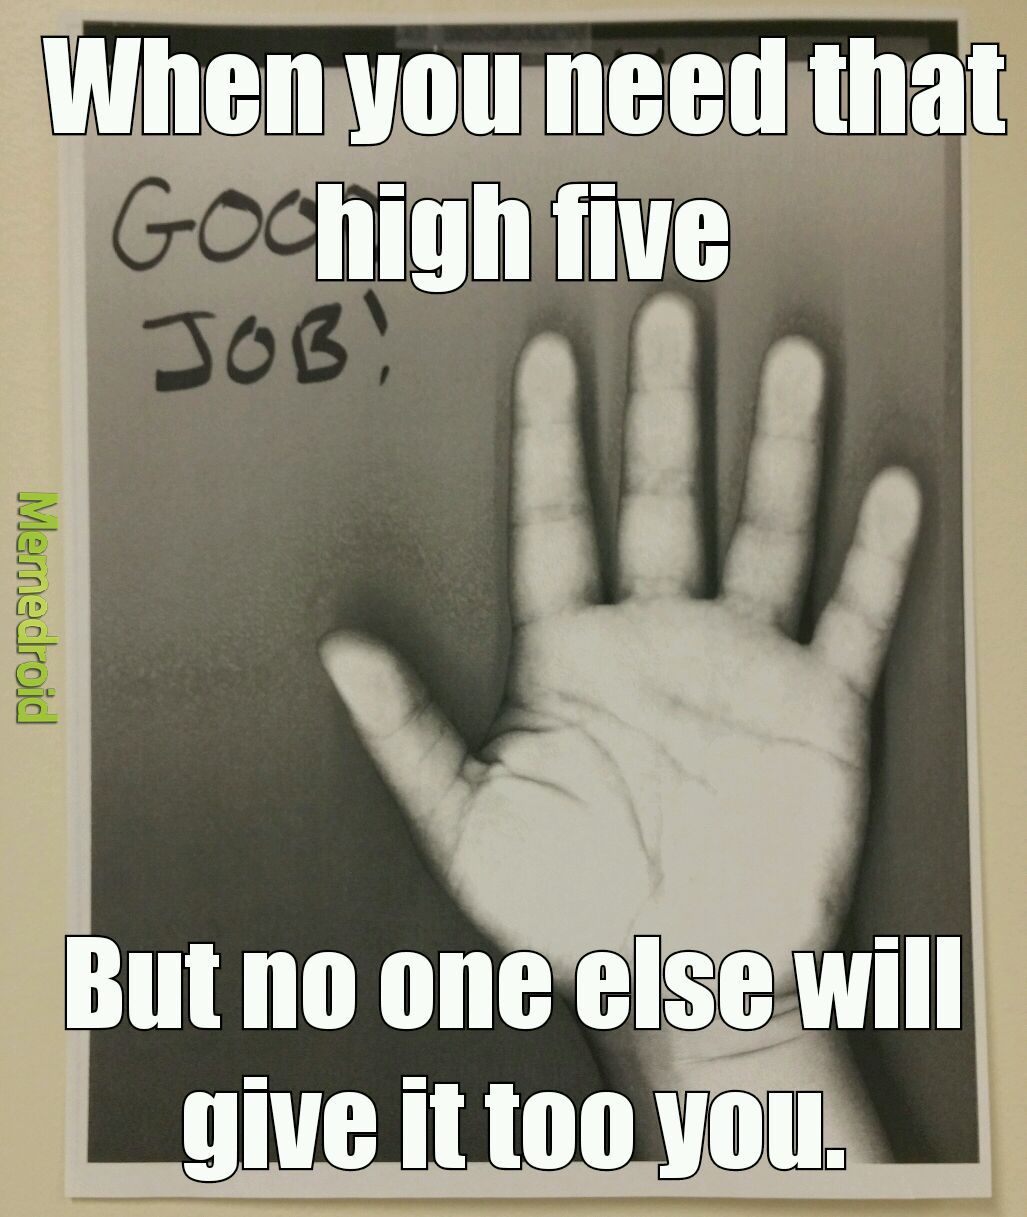 High five. - meme